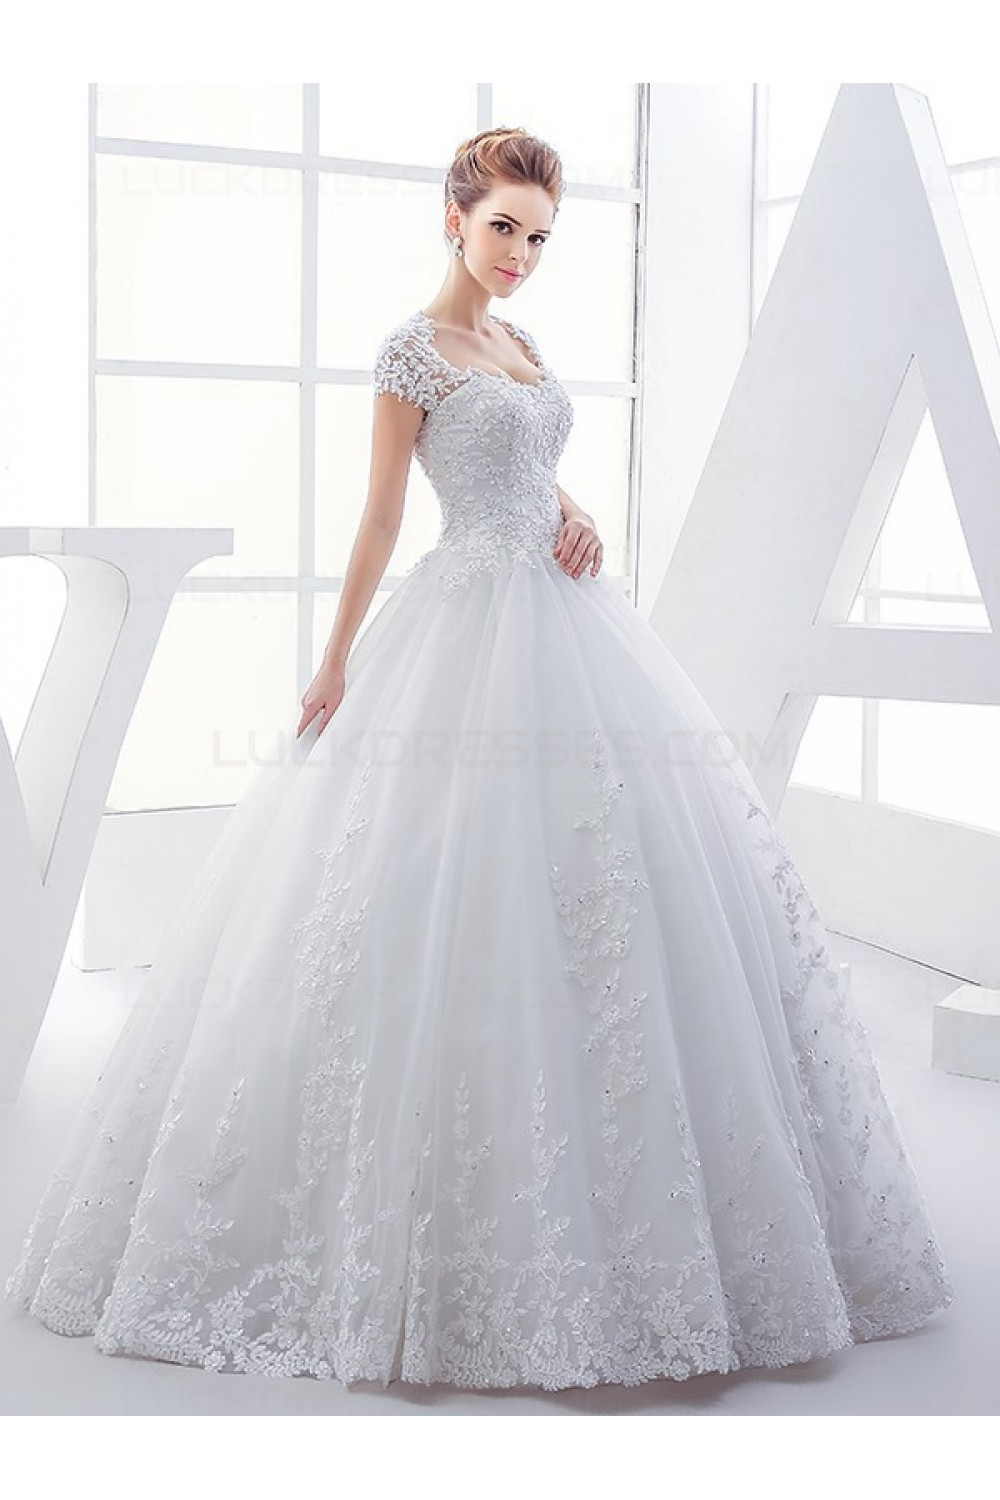 Lace Ball Gown Keyhole Back Sparkly Wedding Dresses Bridal Gowns